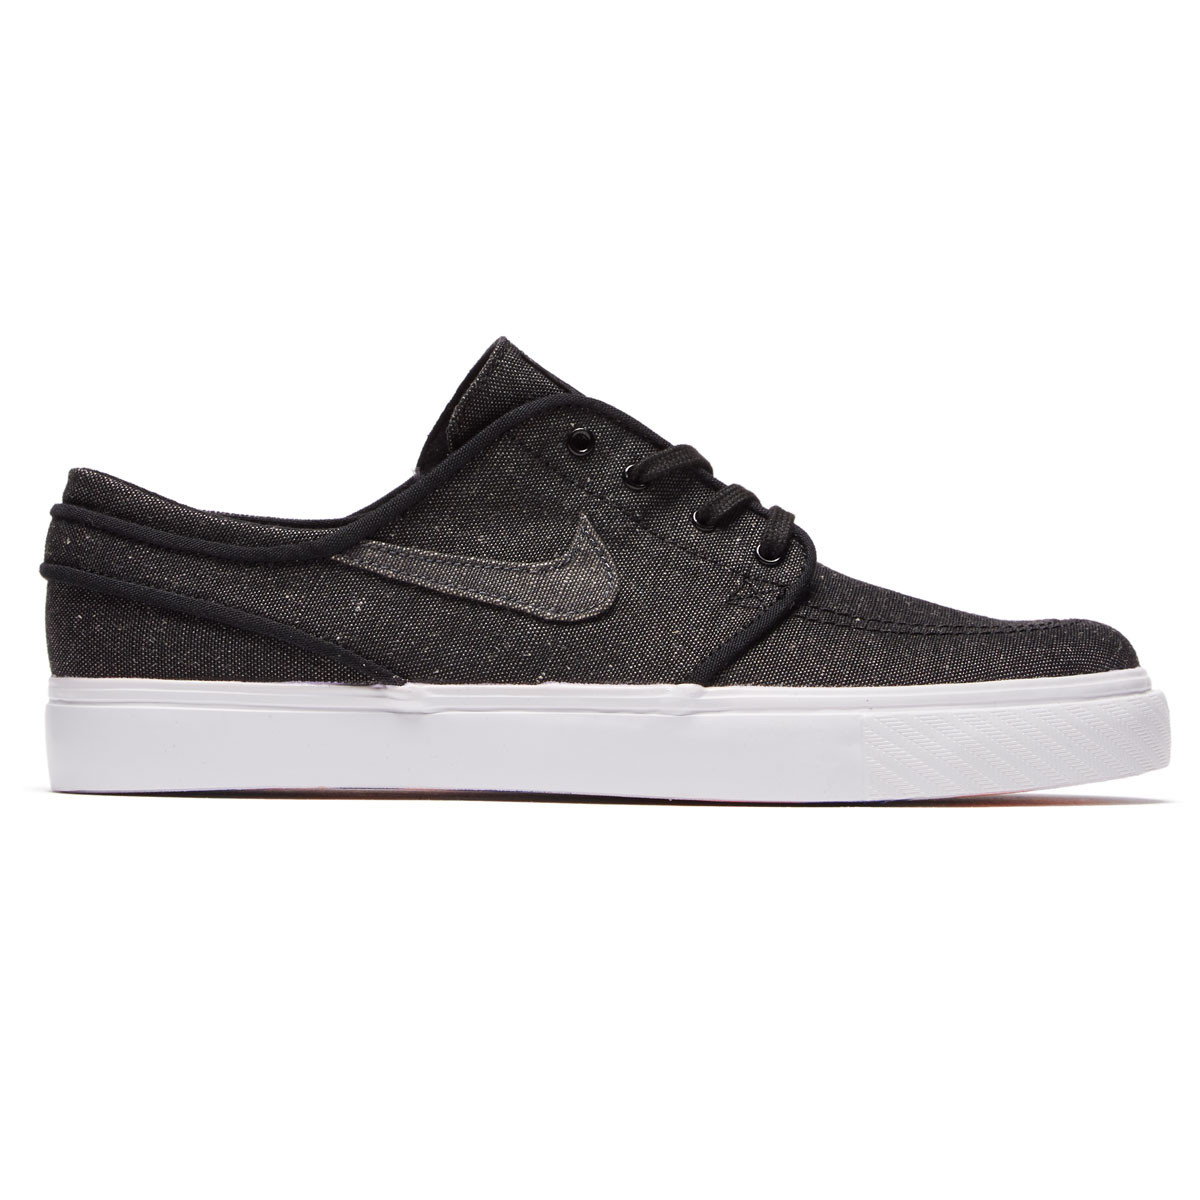 6f5d788077dd Nike SB Zoom Stefan Janoski Canvas Deconstructed Shoes - Black Anthracite  White Hyper Royal